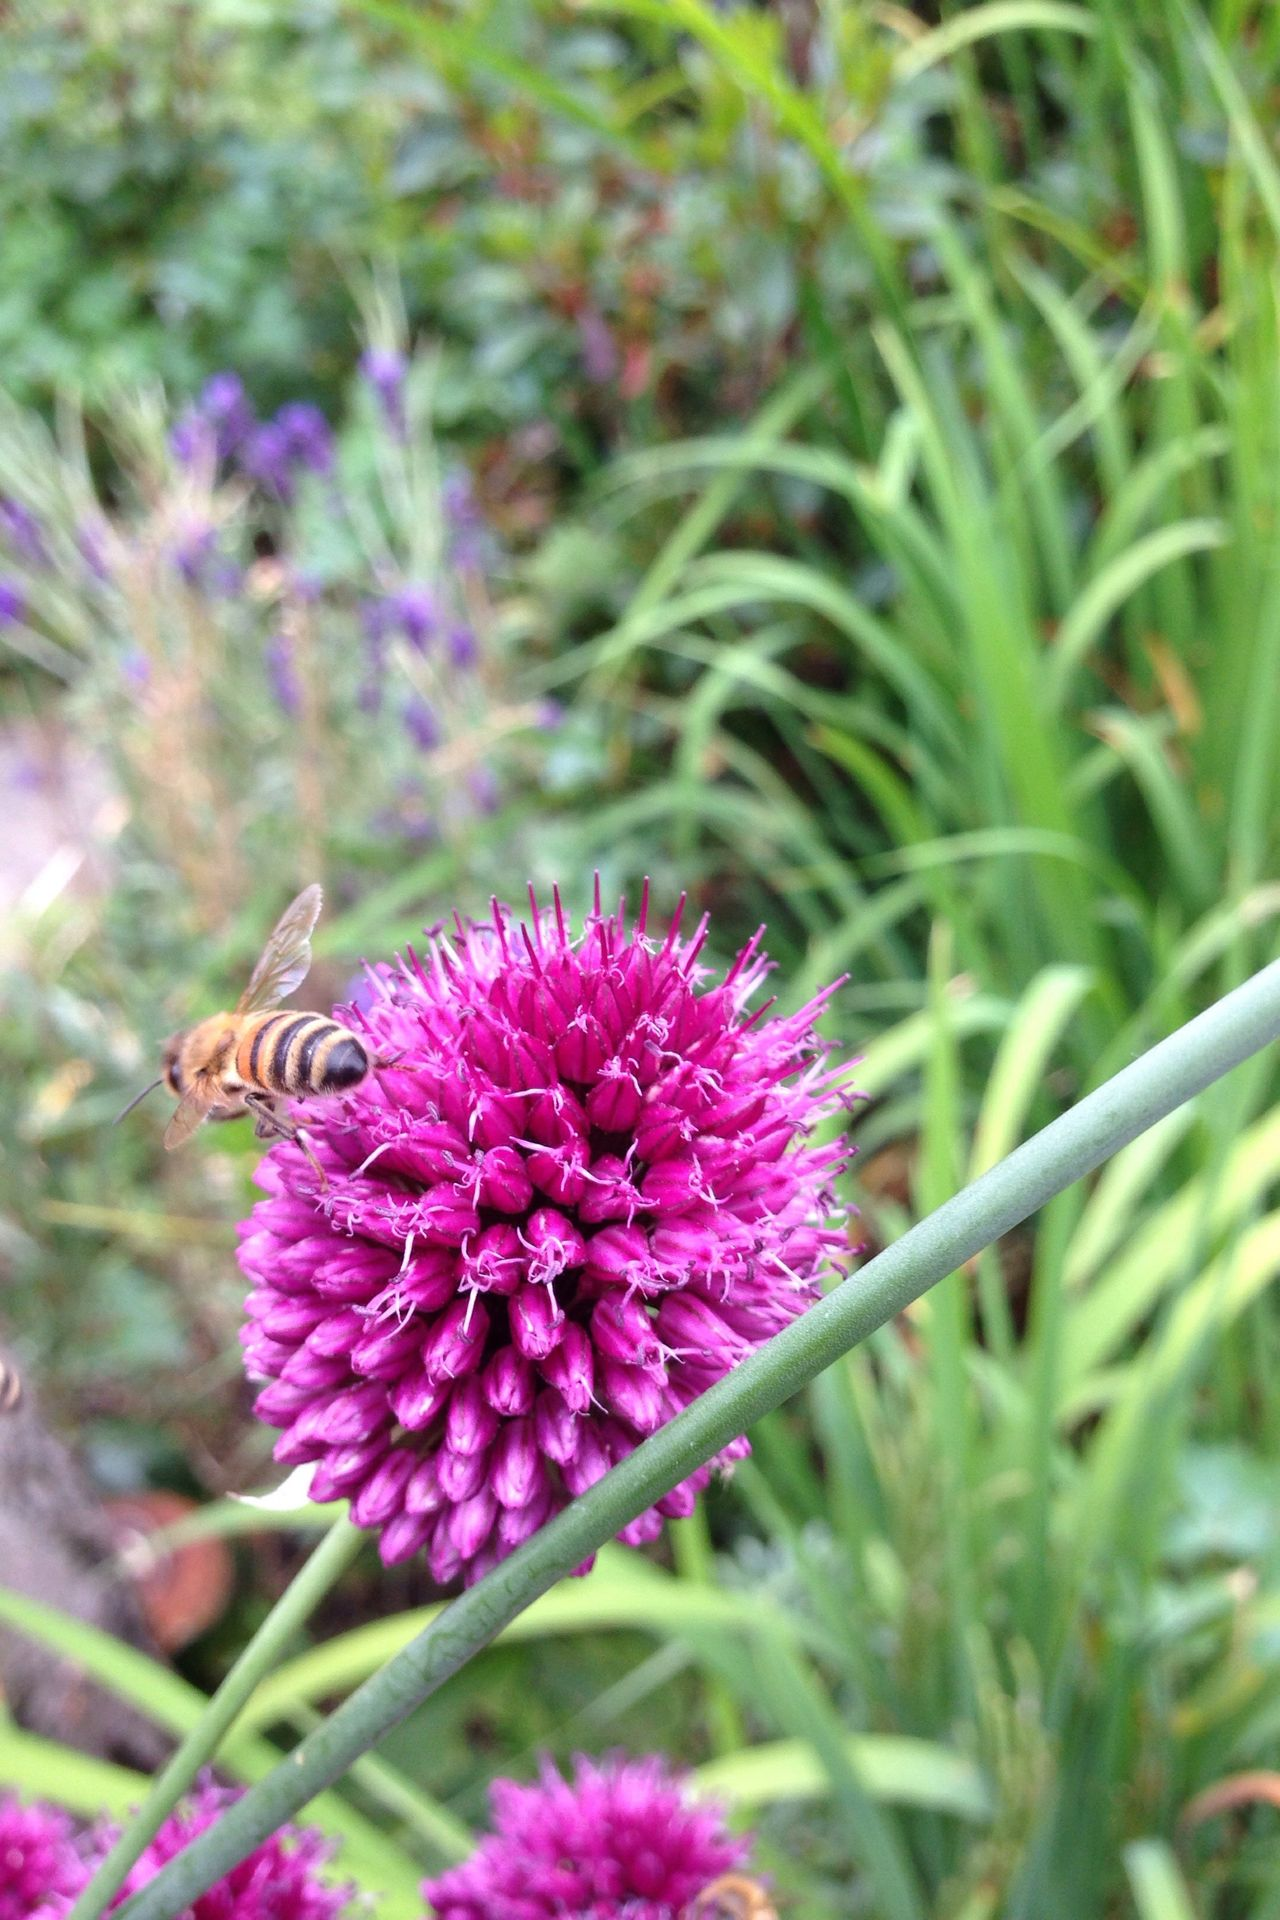 Allium Sphaerocephalon Allium Flower Bee Bees And Flowers Bees Garden Garden Photography Zierlauch Lauch Kugellauch